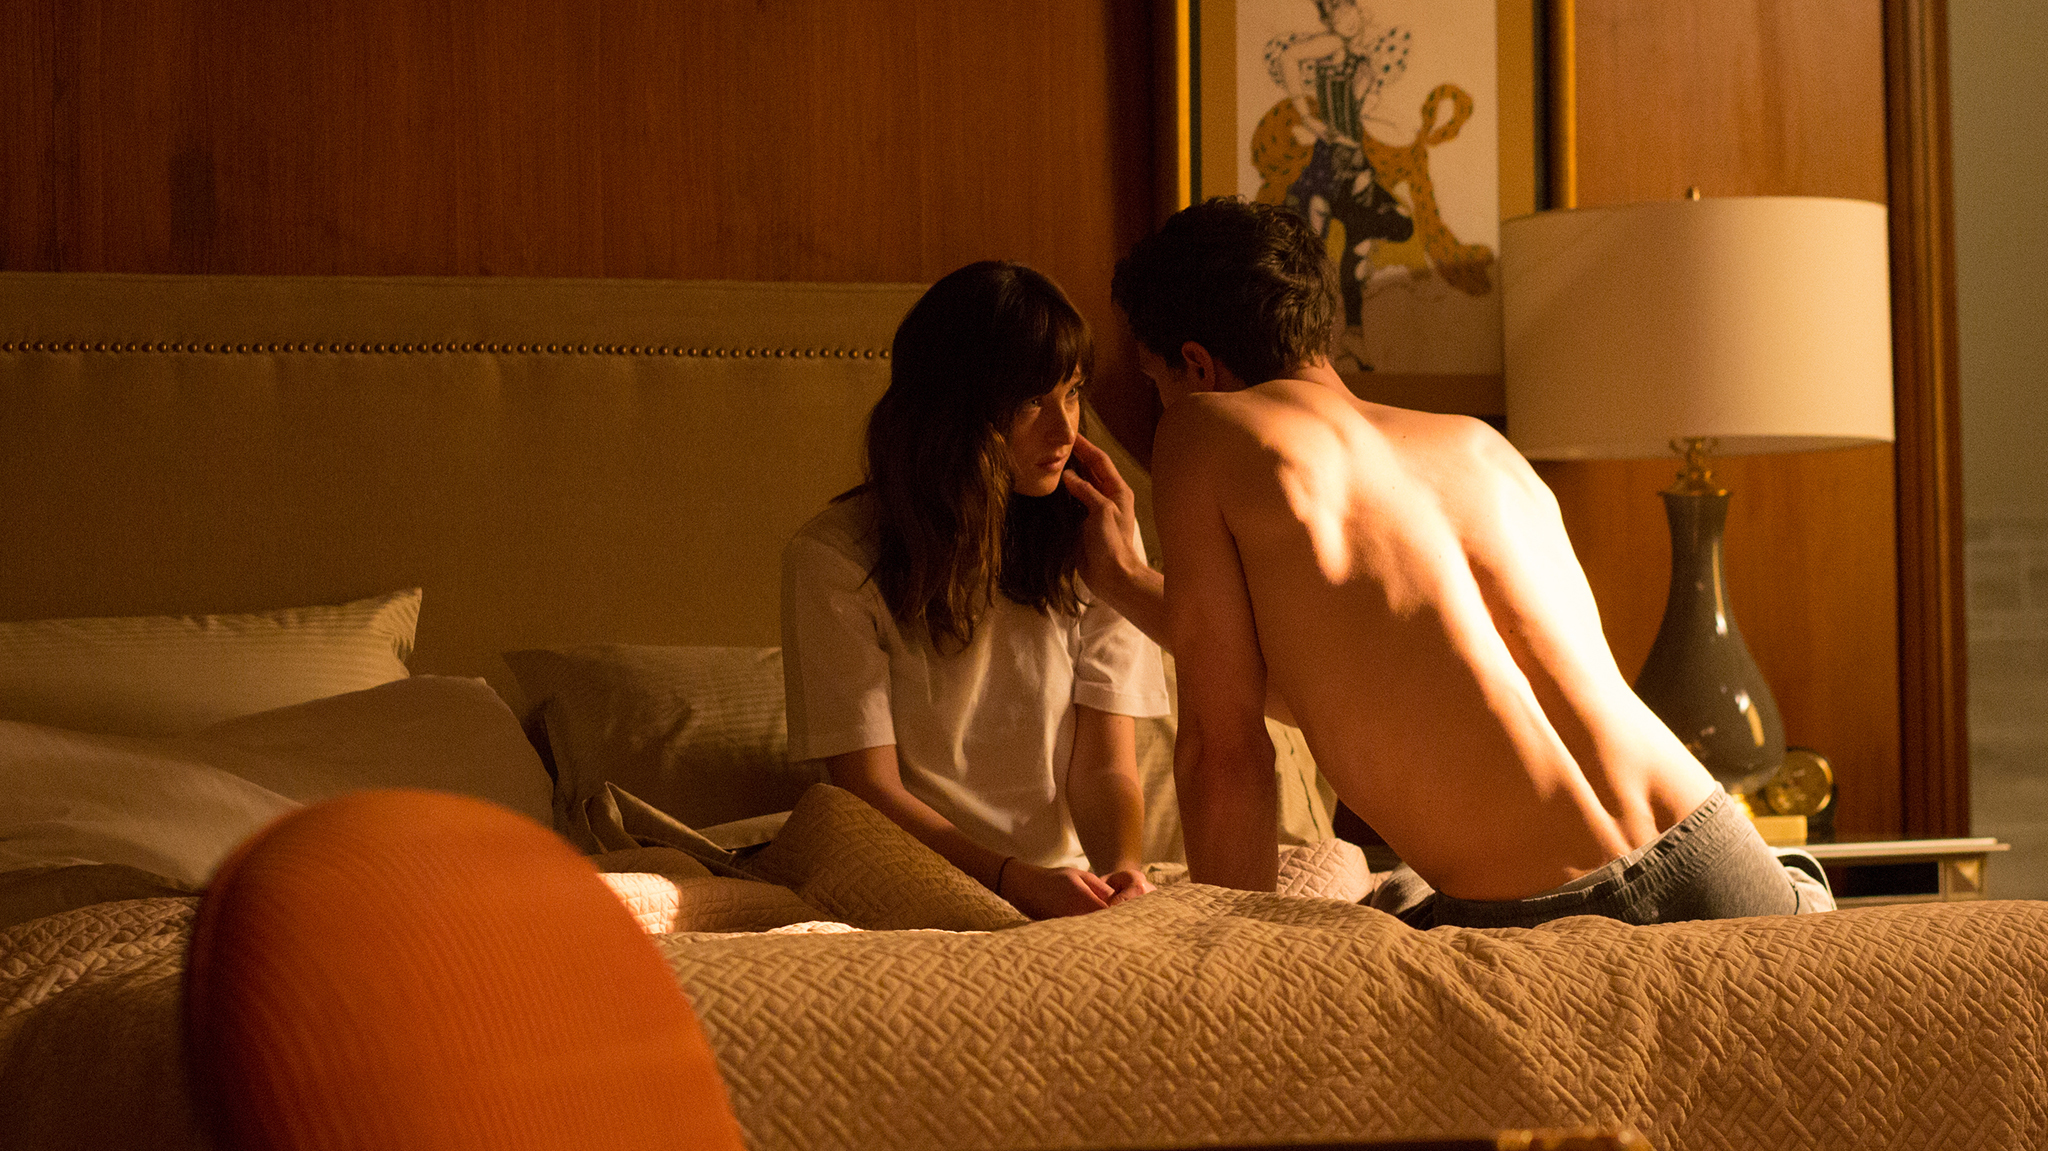 Ten things we learned from 'Fifty Shades of Grey'